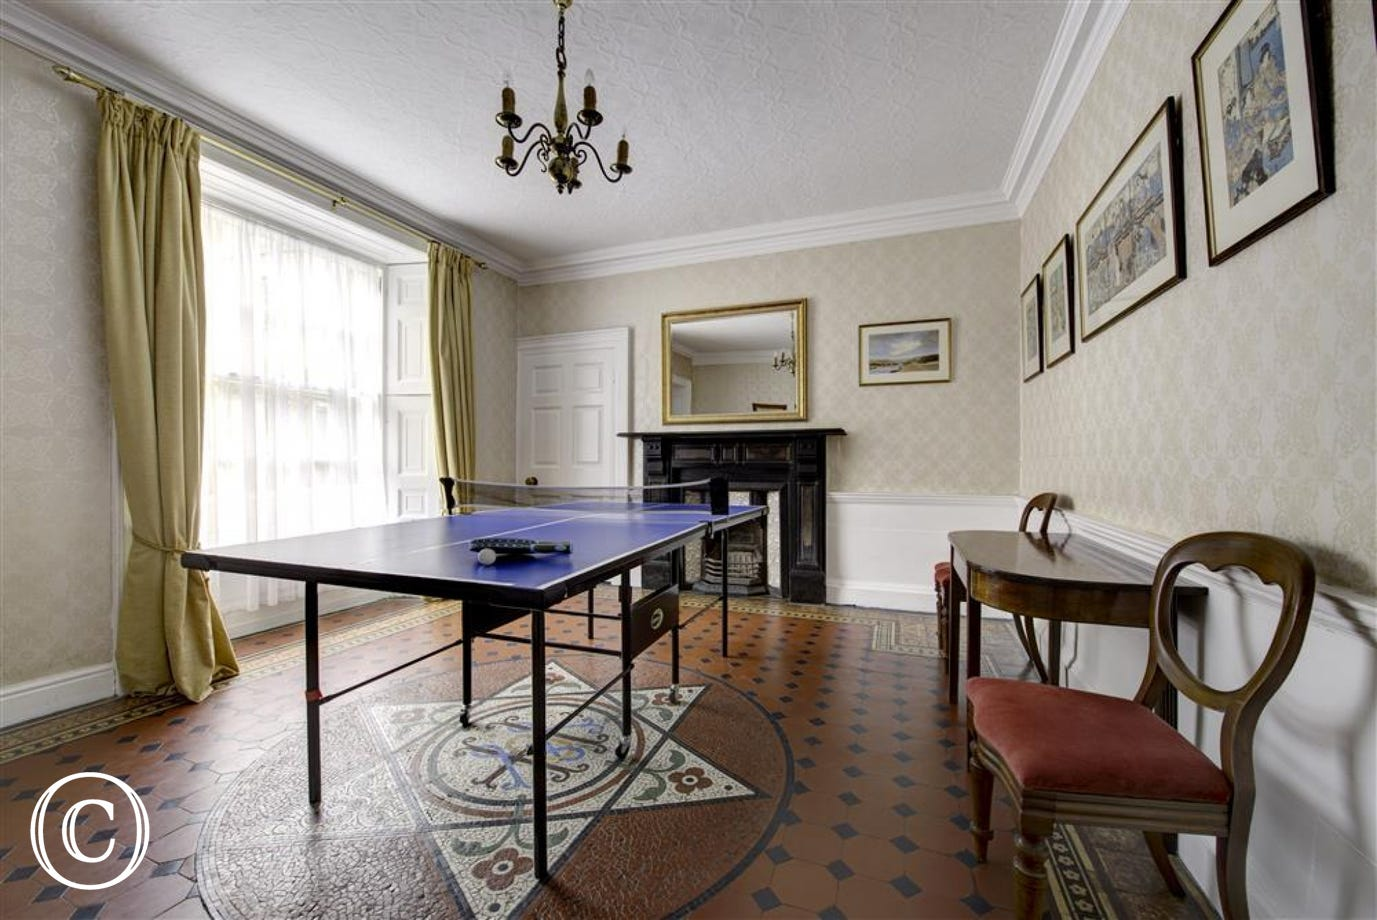 Games room with table tennis and billiards for family competitions!